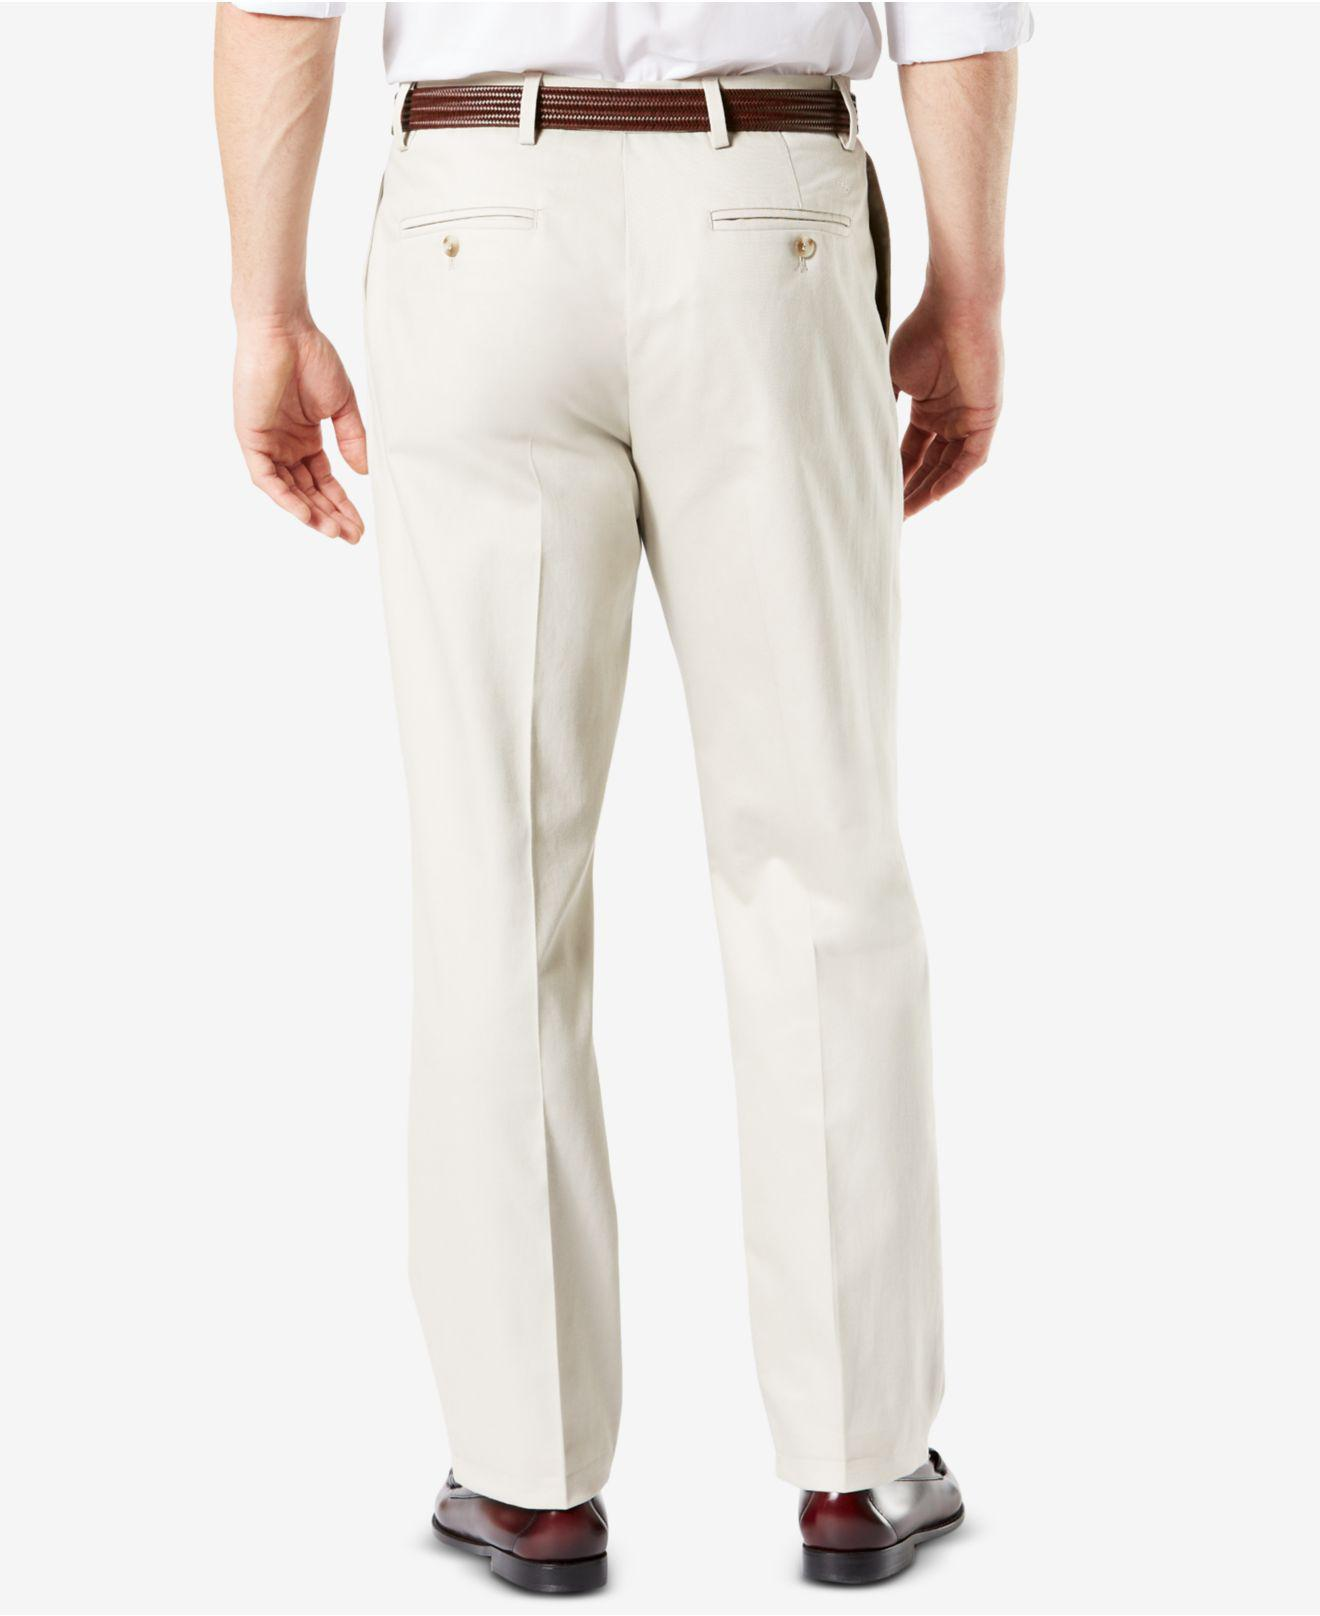 3bb4f4690d6 Lyst - Dockers Signature Lux Cotton Classic-fit Pleated Performance Stretch  Pants for Men